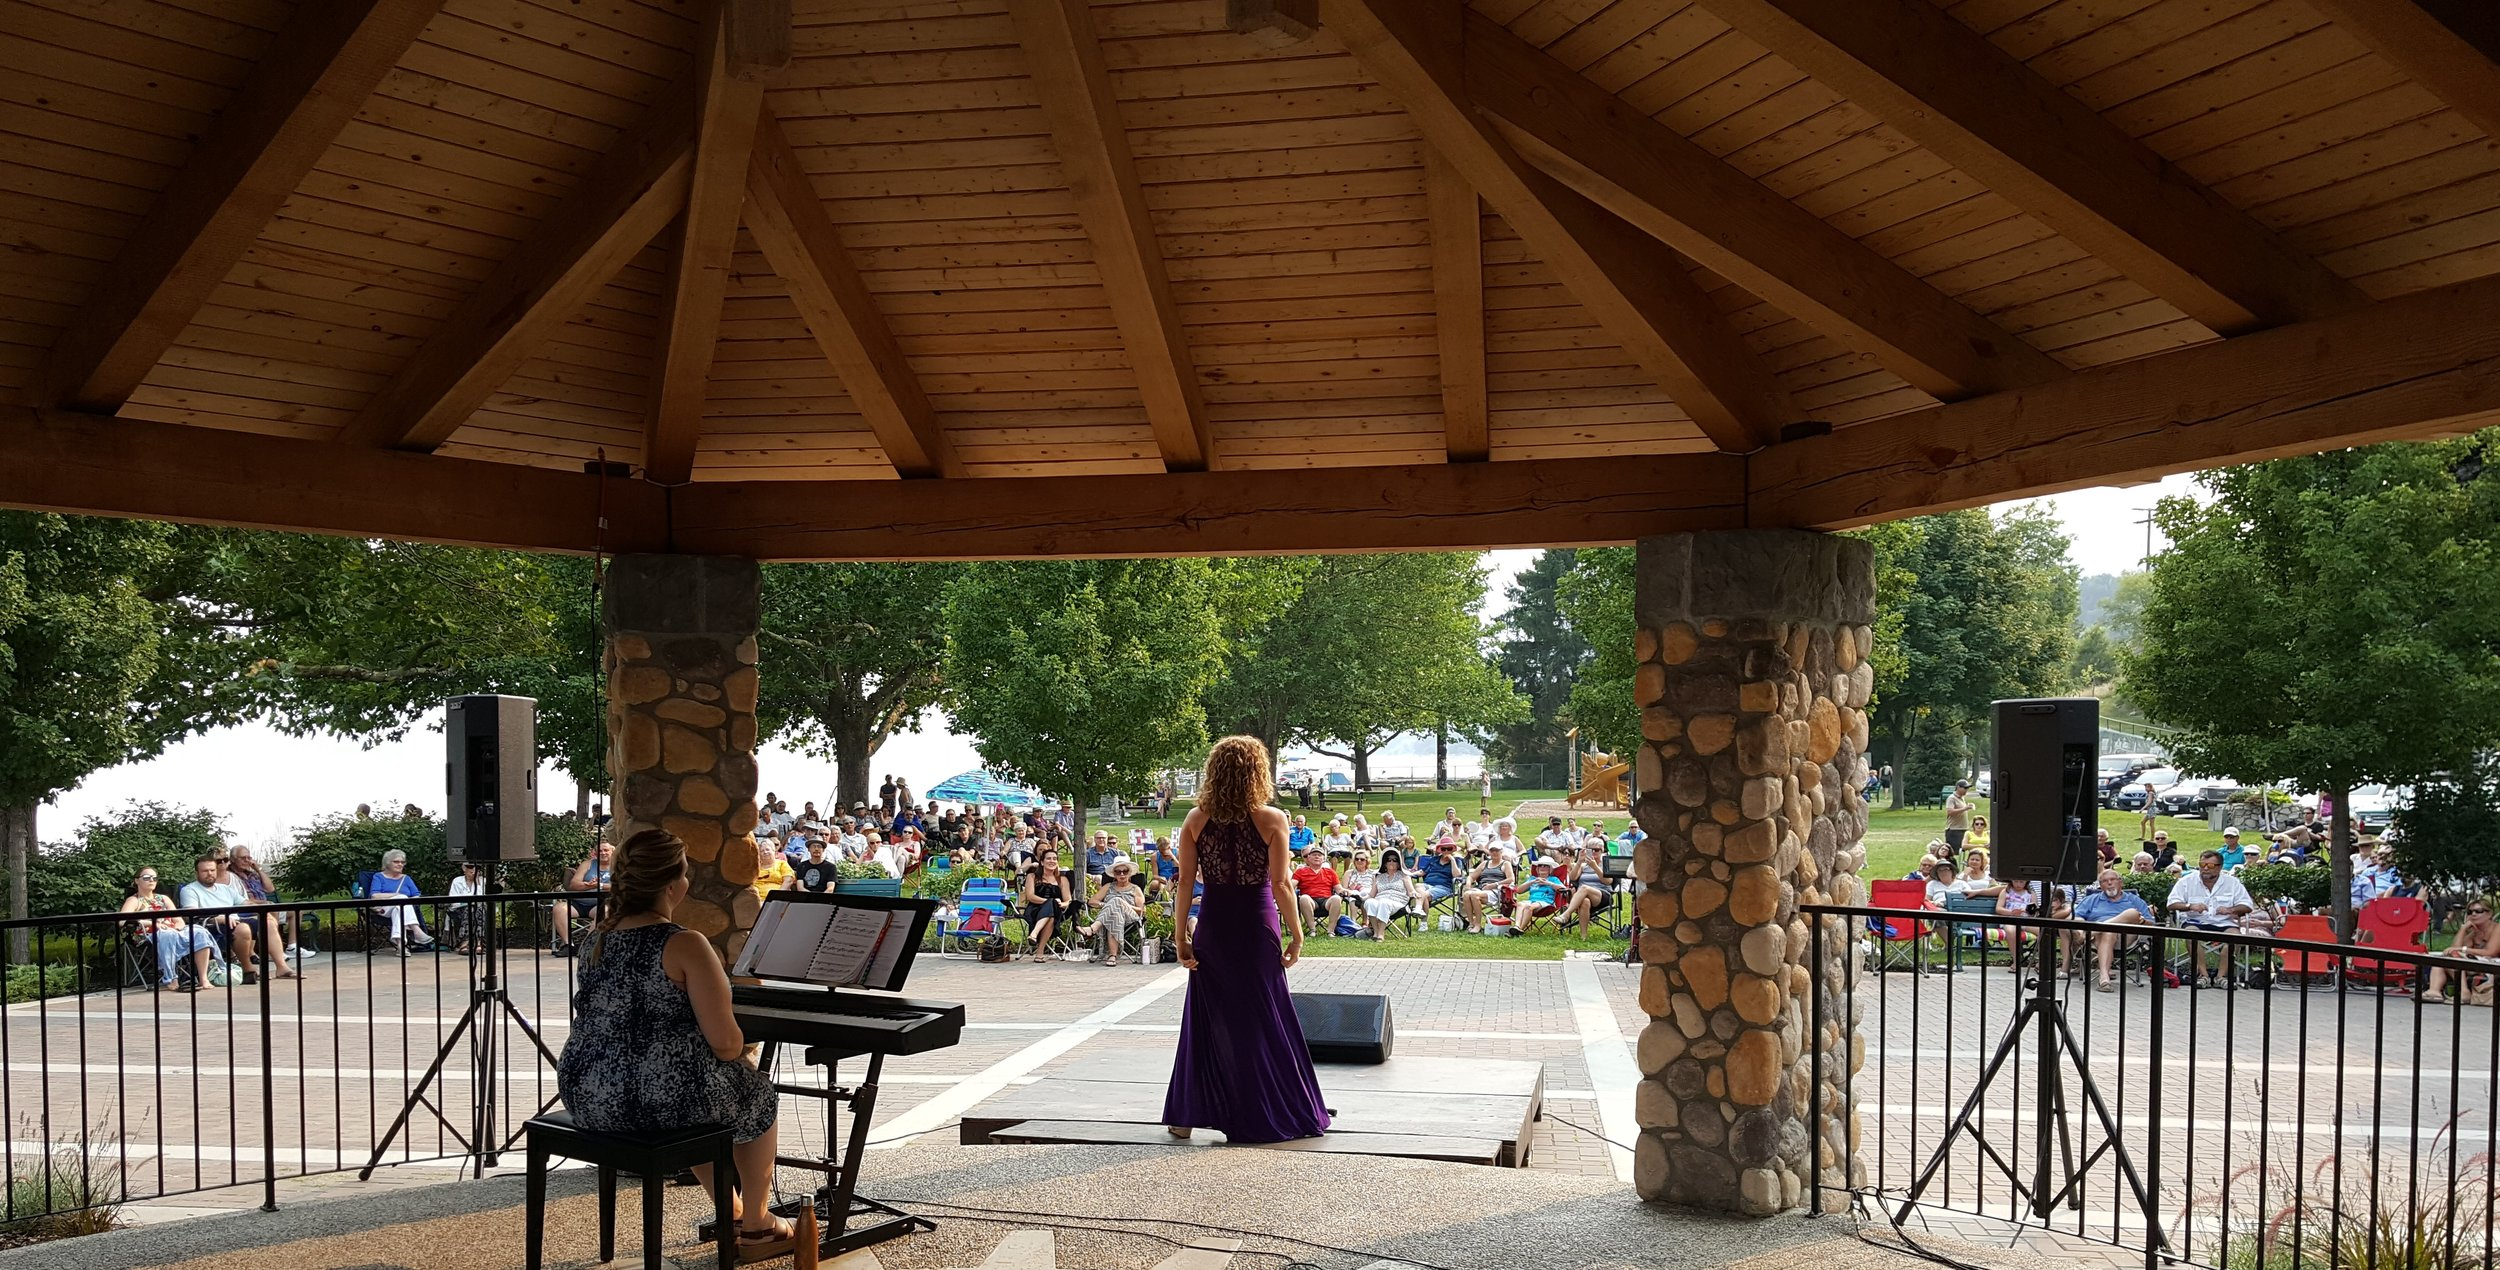 Mezzo-soprano Barbara King performs at the Opera in the Park, Guisachan Park, KELOWNA , on Aug 3rd, 2017